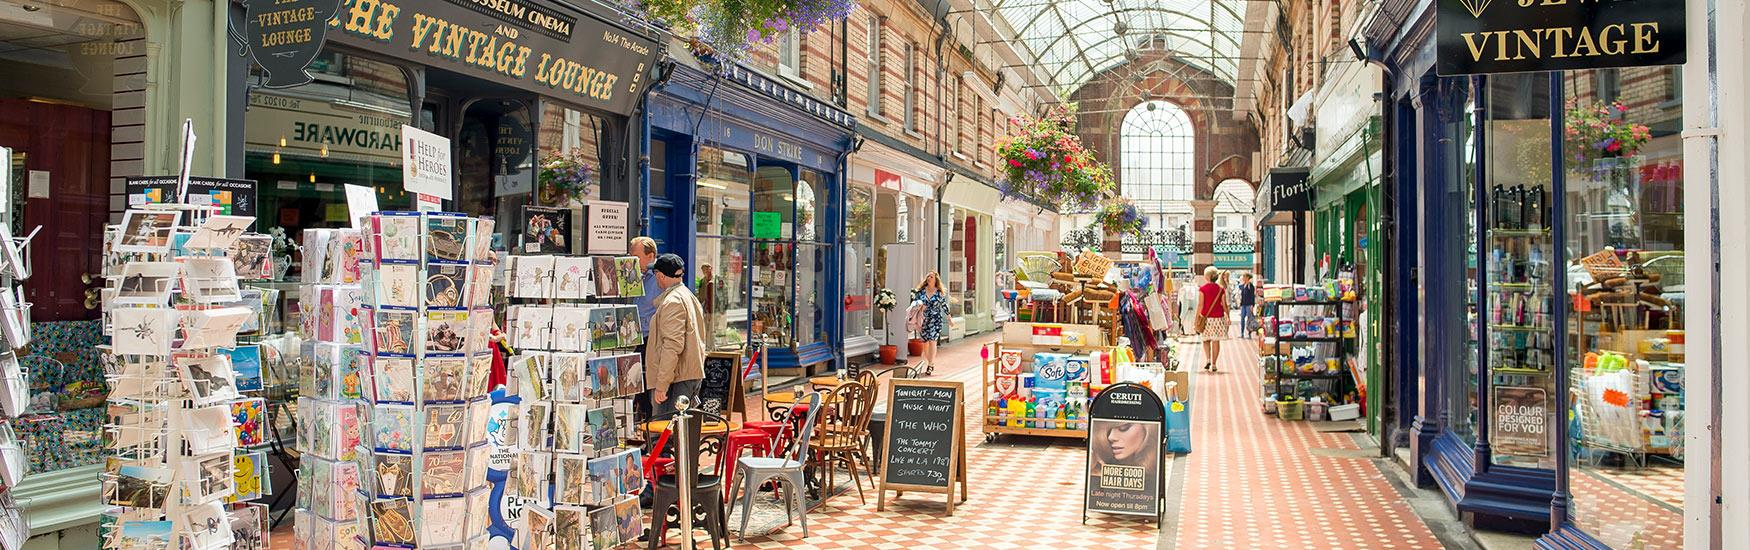 Westbourne arcade filled with customers enjoying a browse of the local products and cafes